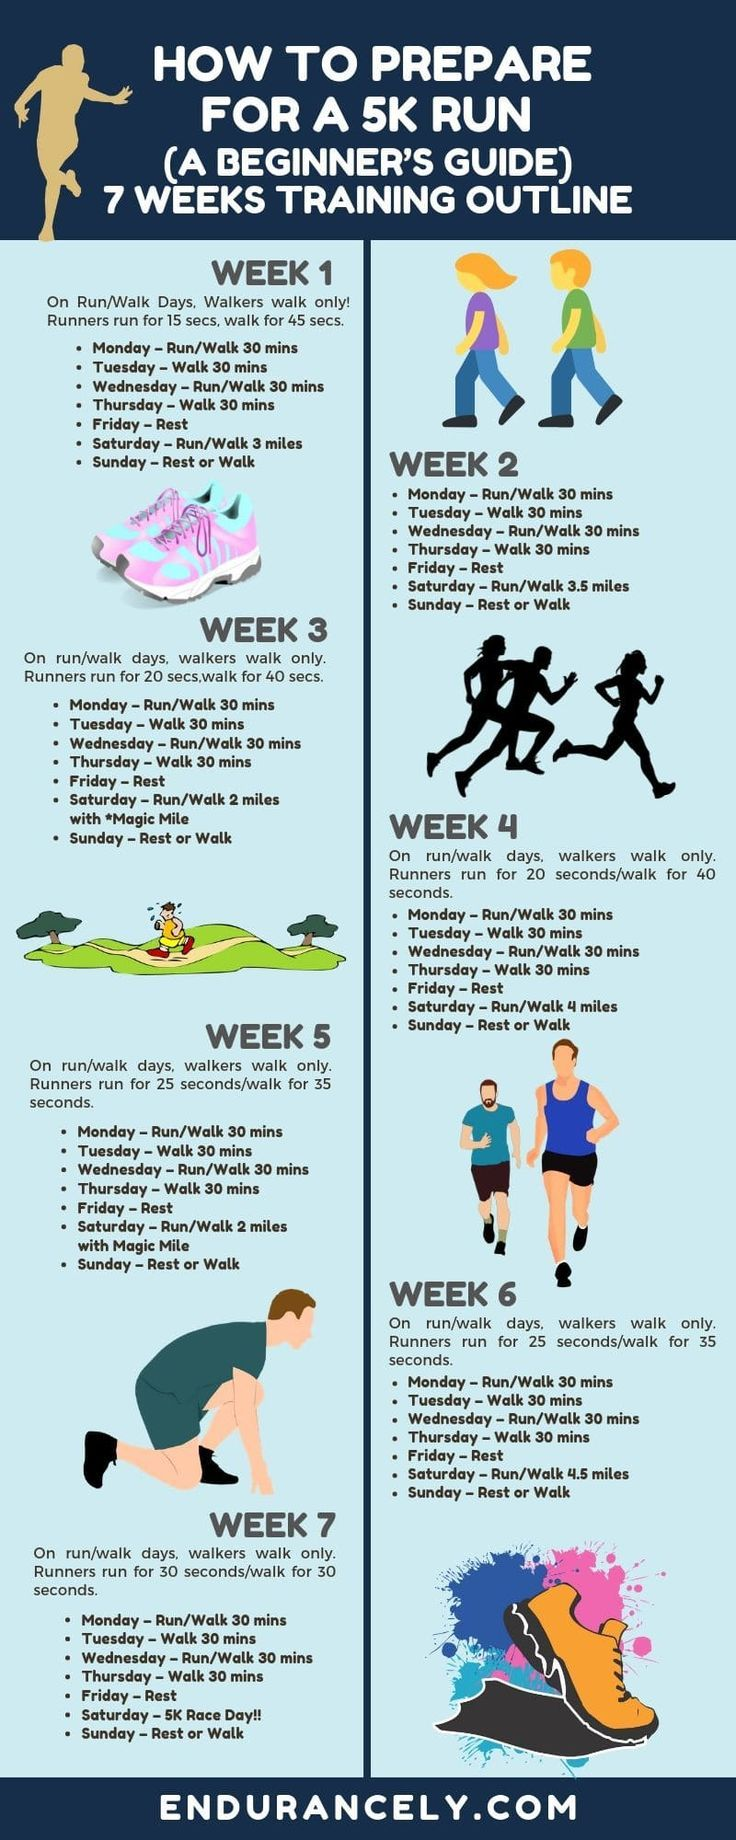 Photo of A beginners guide to preparing for a 5K run. See the 7-week outline to get ready…